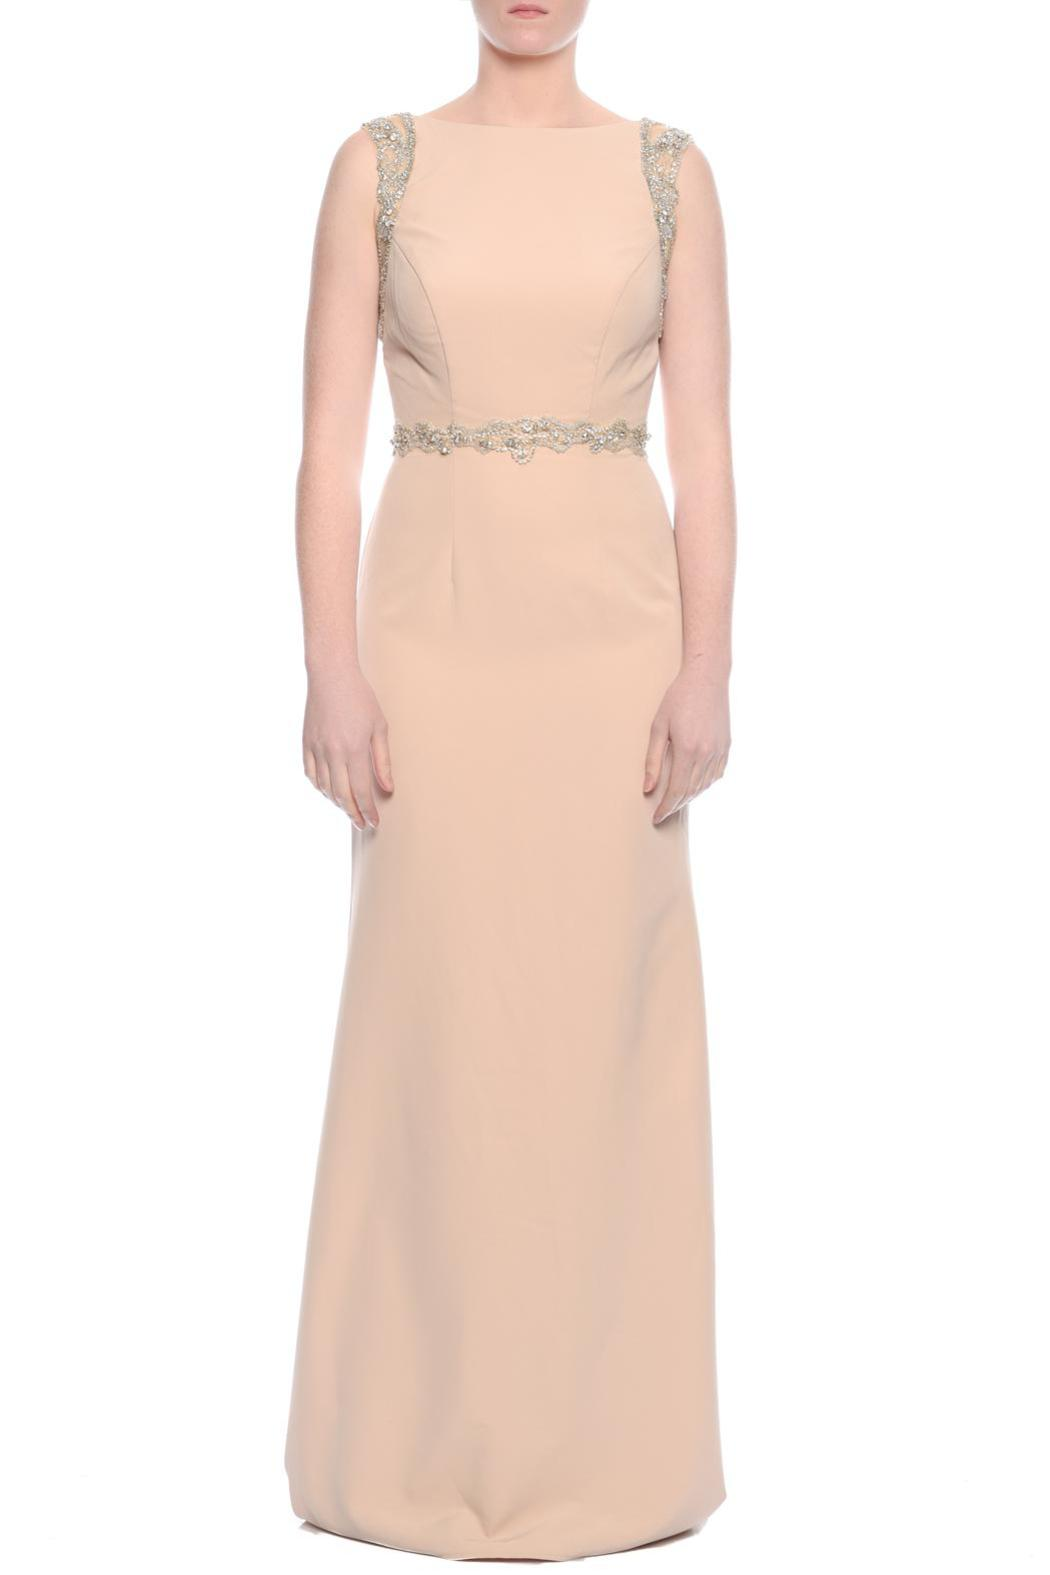 47fbeb29fc Jadore Claremont Gown from Sydney by Windsor and Lux — Shoptiques